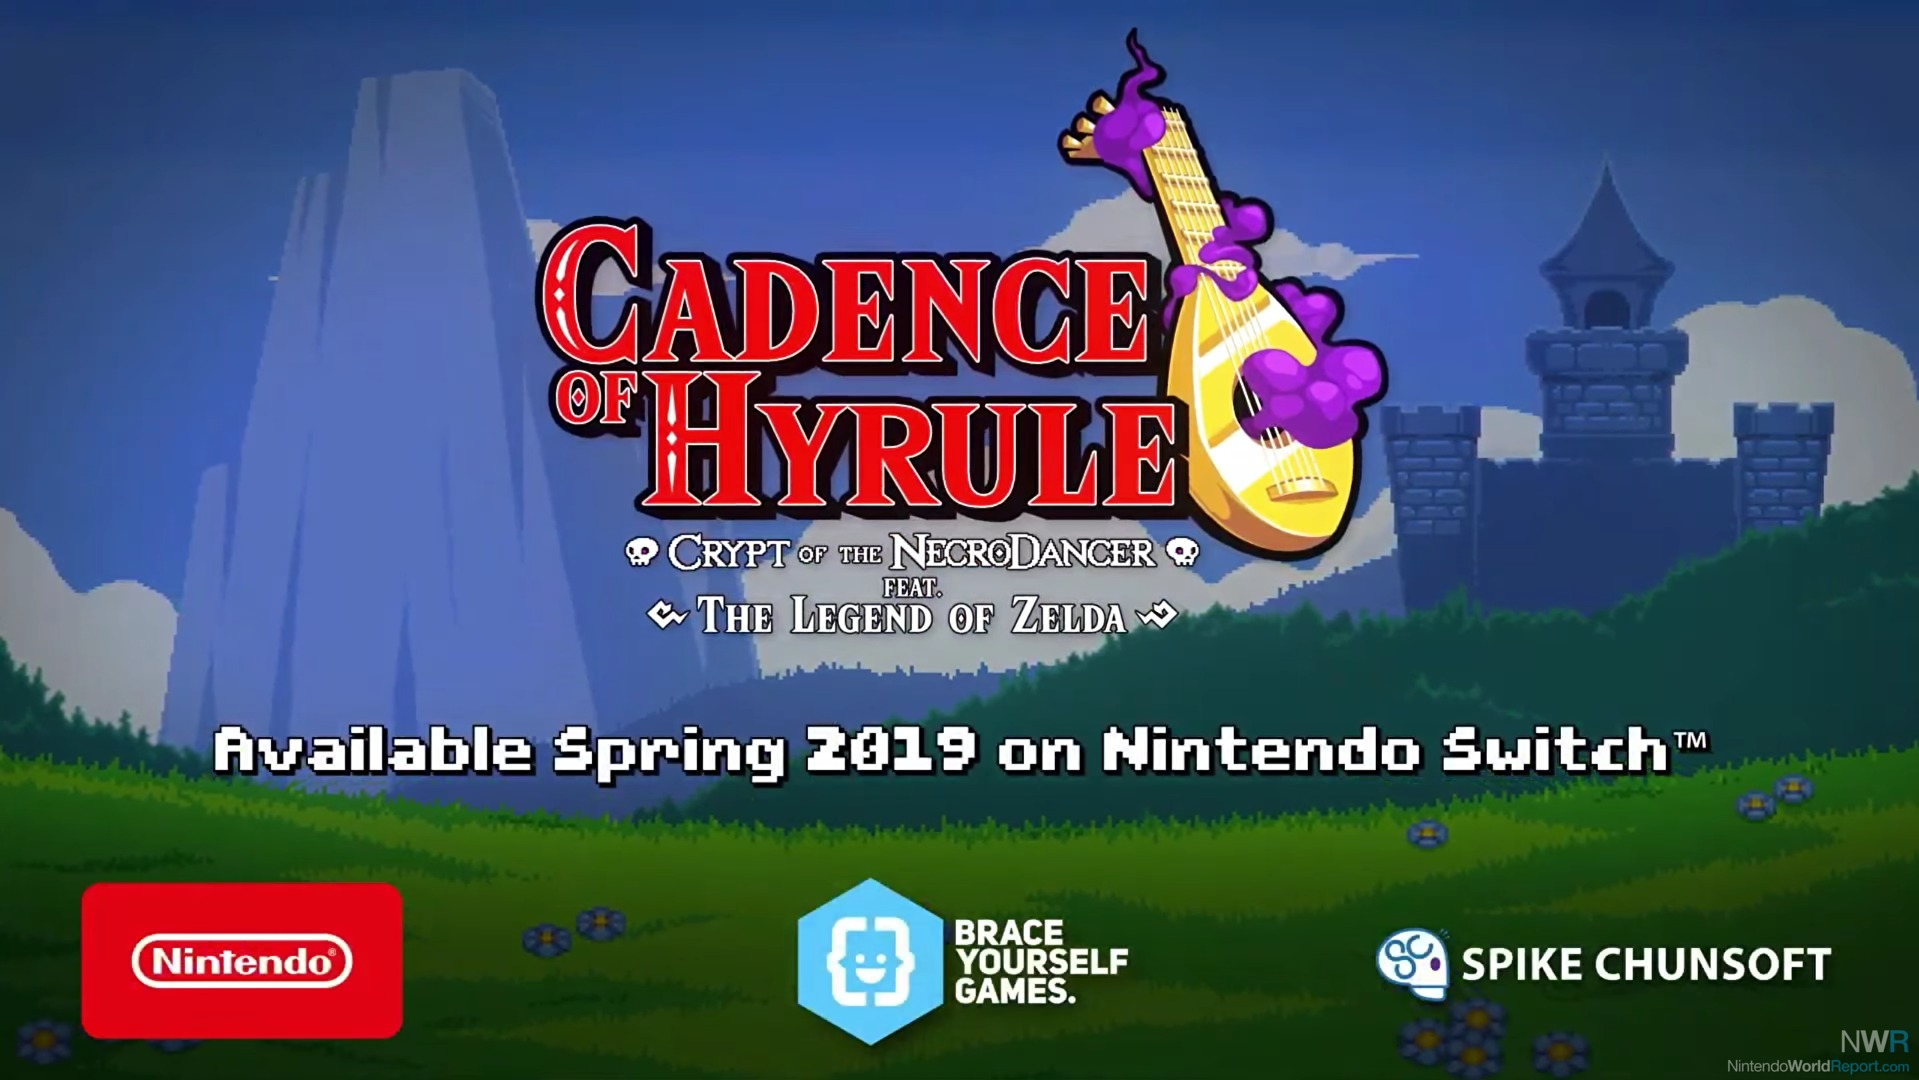 Cadence of Hyrule is a Zelda and Crypt of the Necrodancer mashup